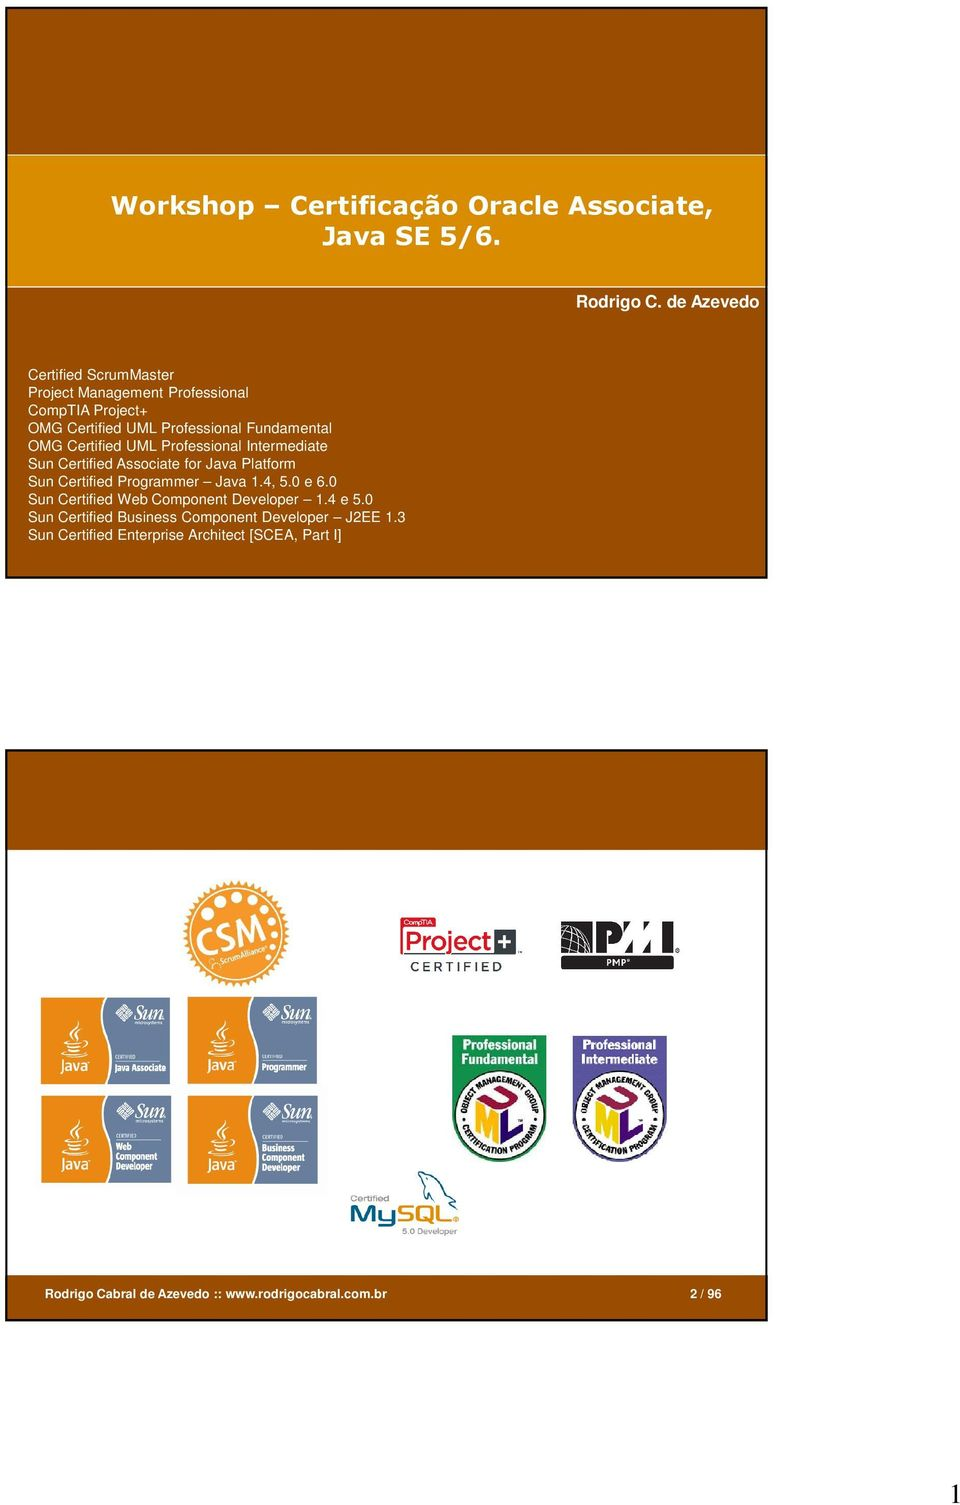 Certified UML Professional Intermediate Sun Certified Associate for Java Platform Sun Certified Programmer Java 1.4, 5.0 e 6.